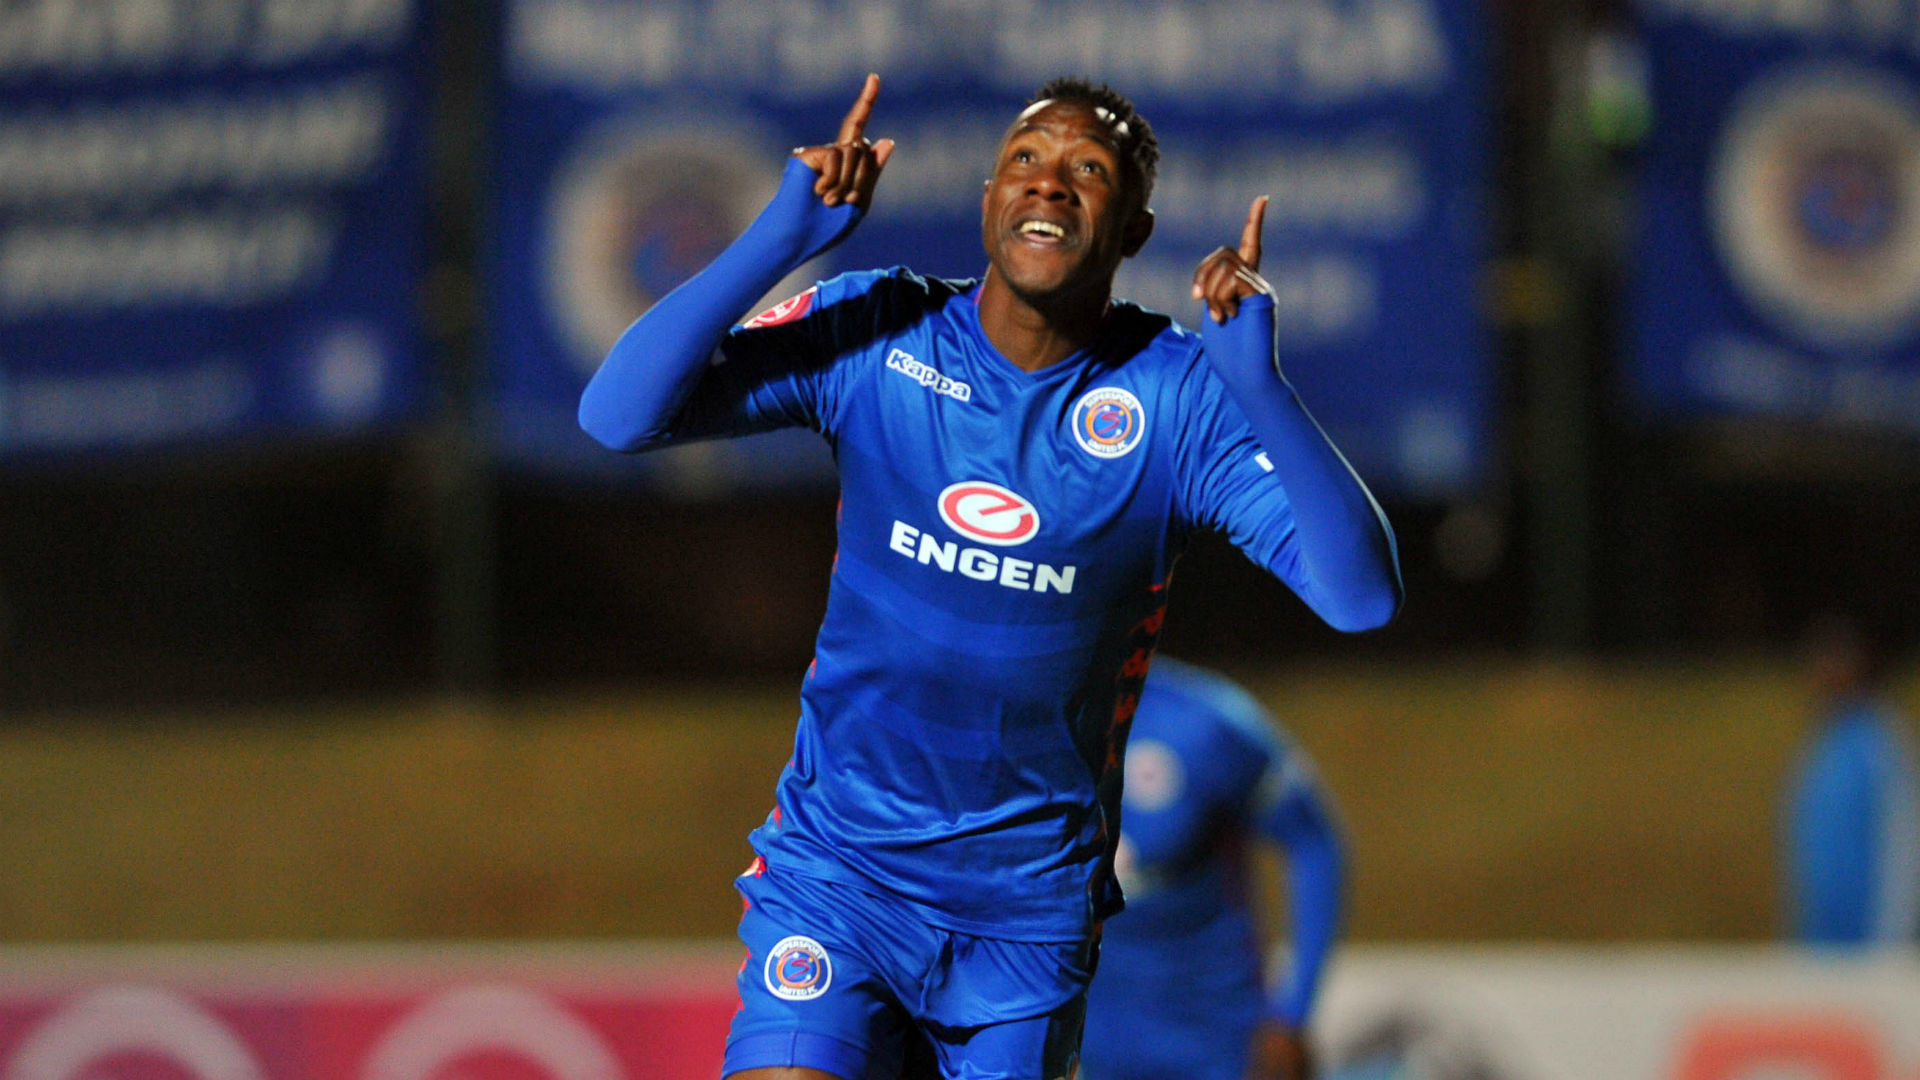 Evans Rusike, SuperSport United, August 2018